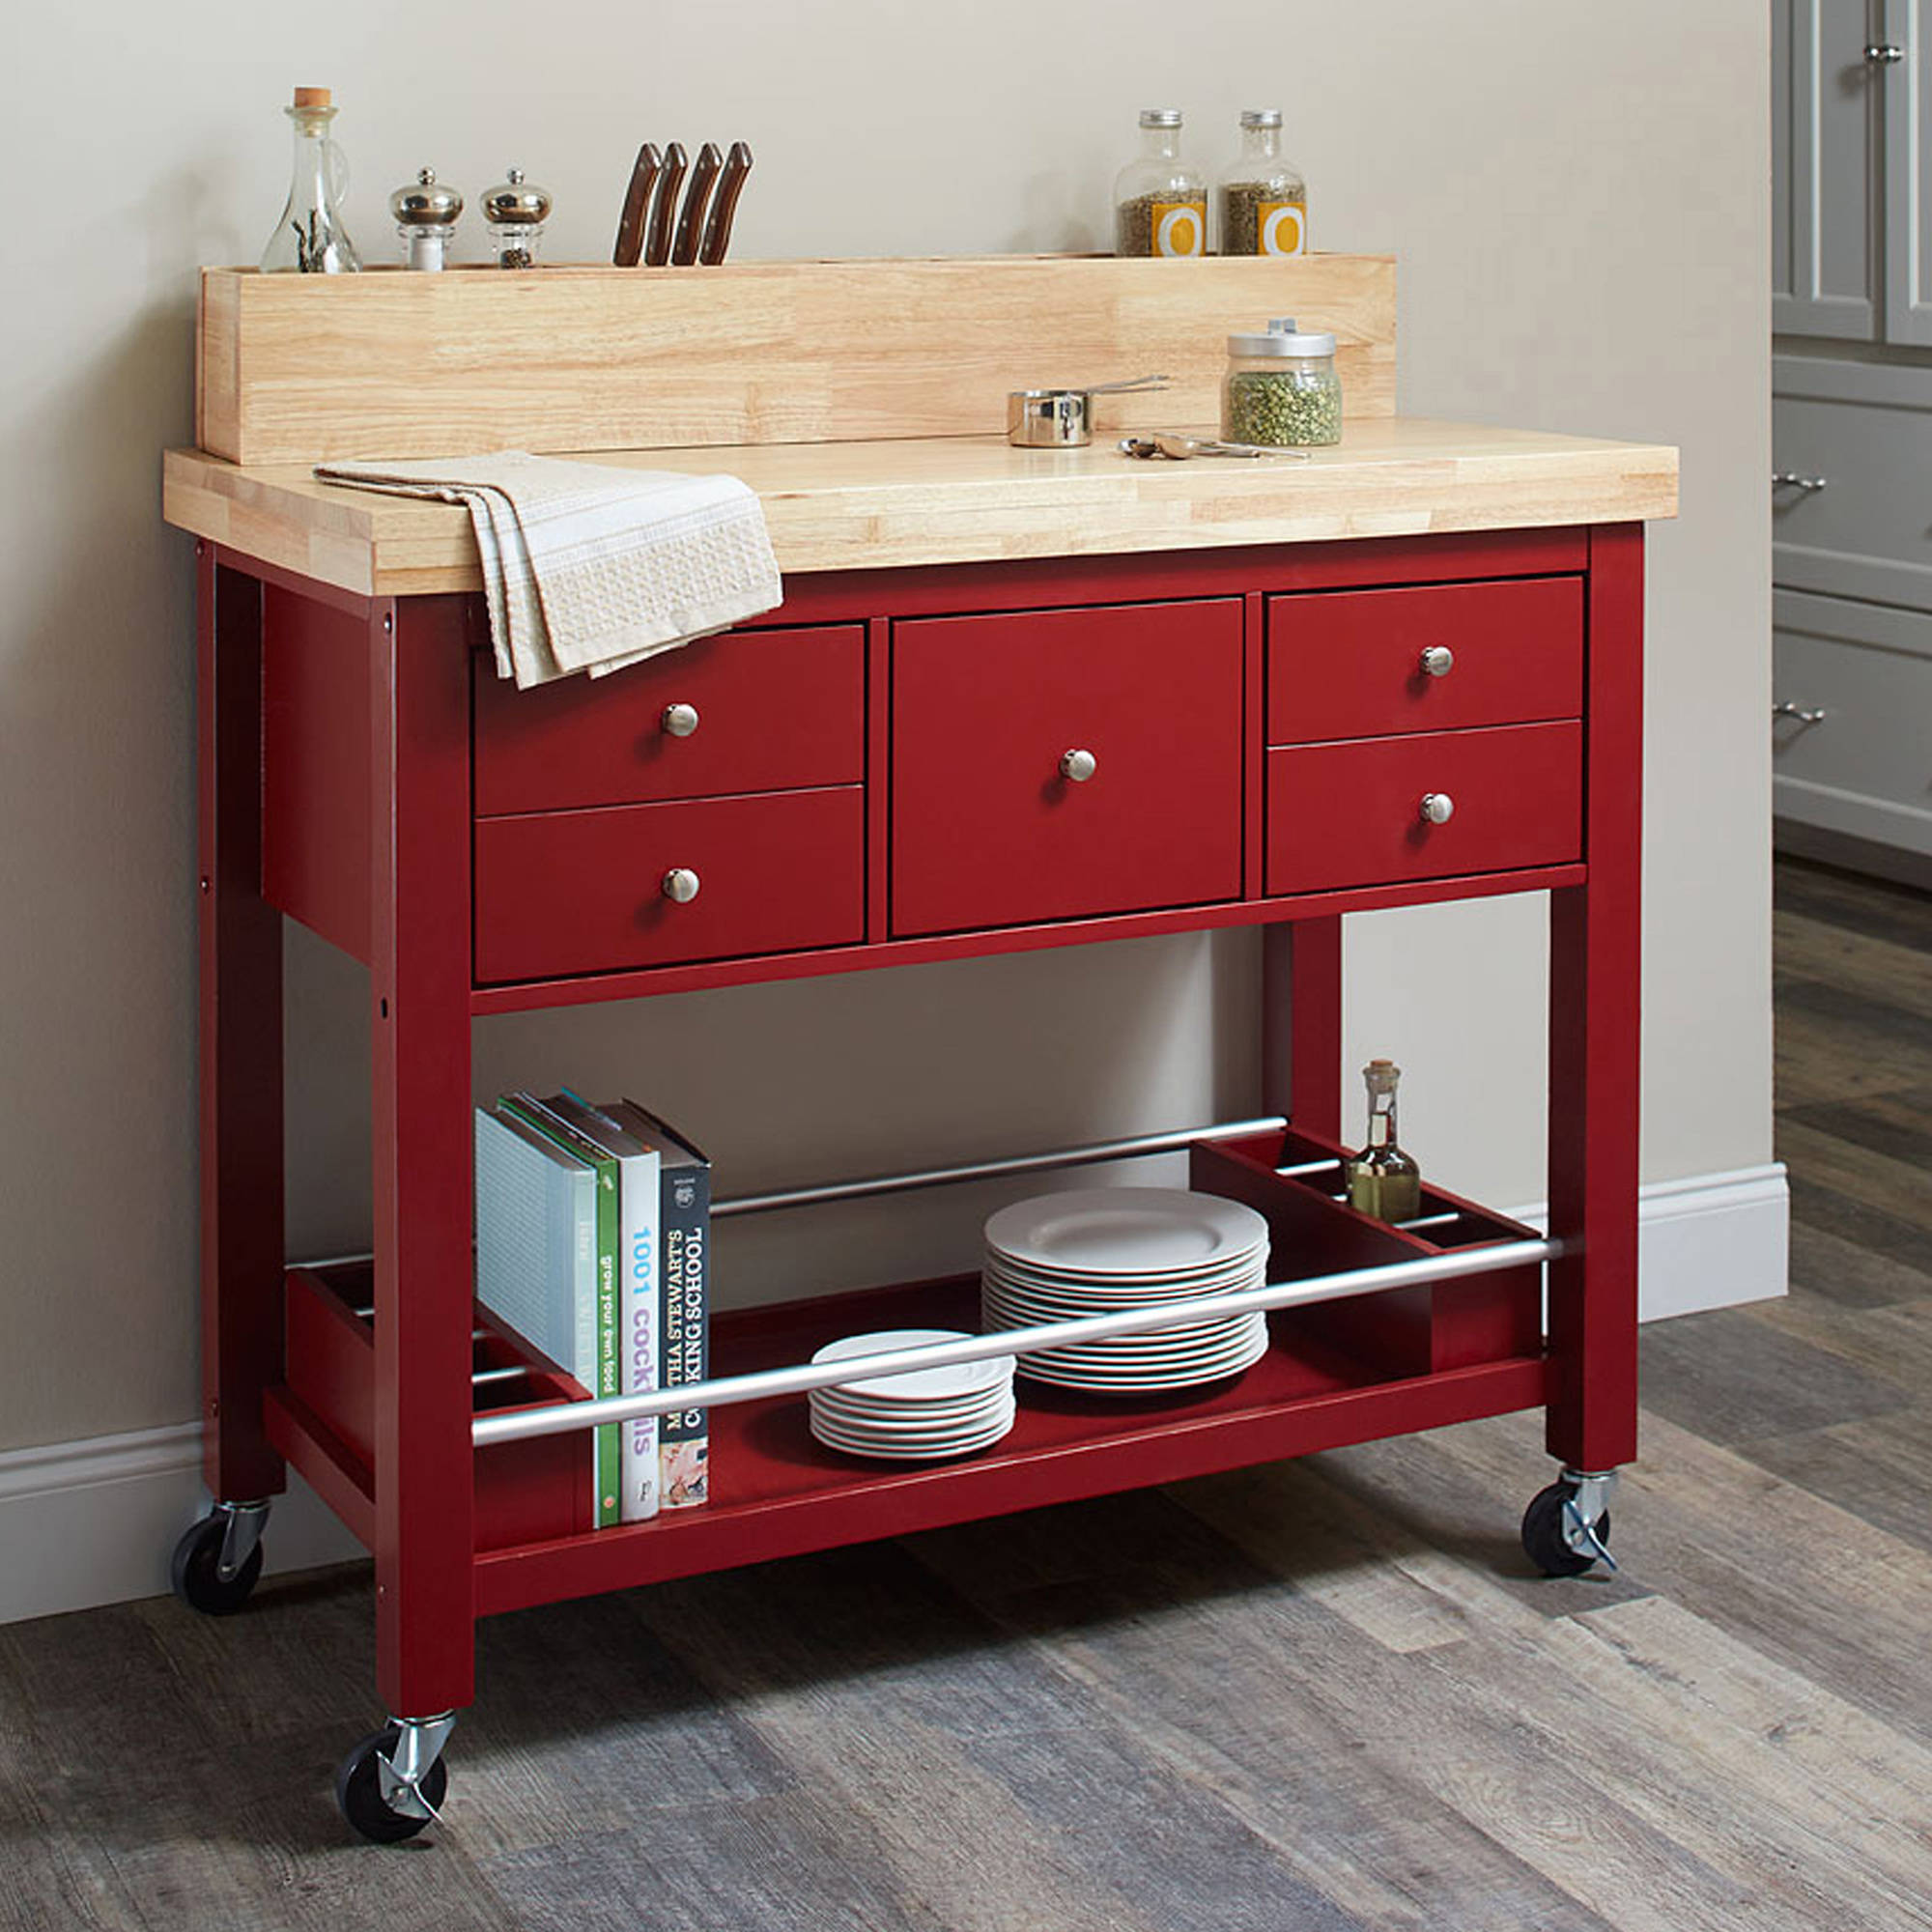 Coaster Furniture Kitchen Cart, Natural and Red